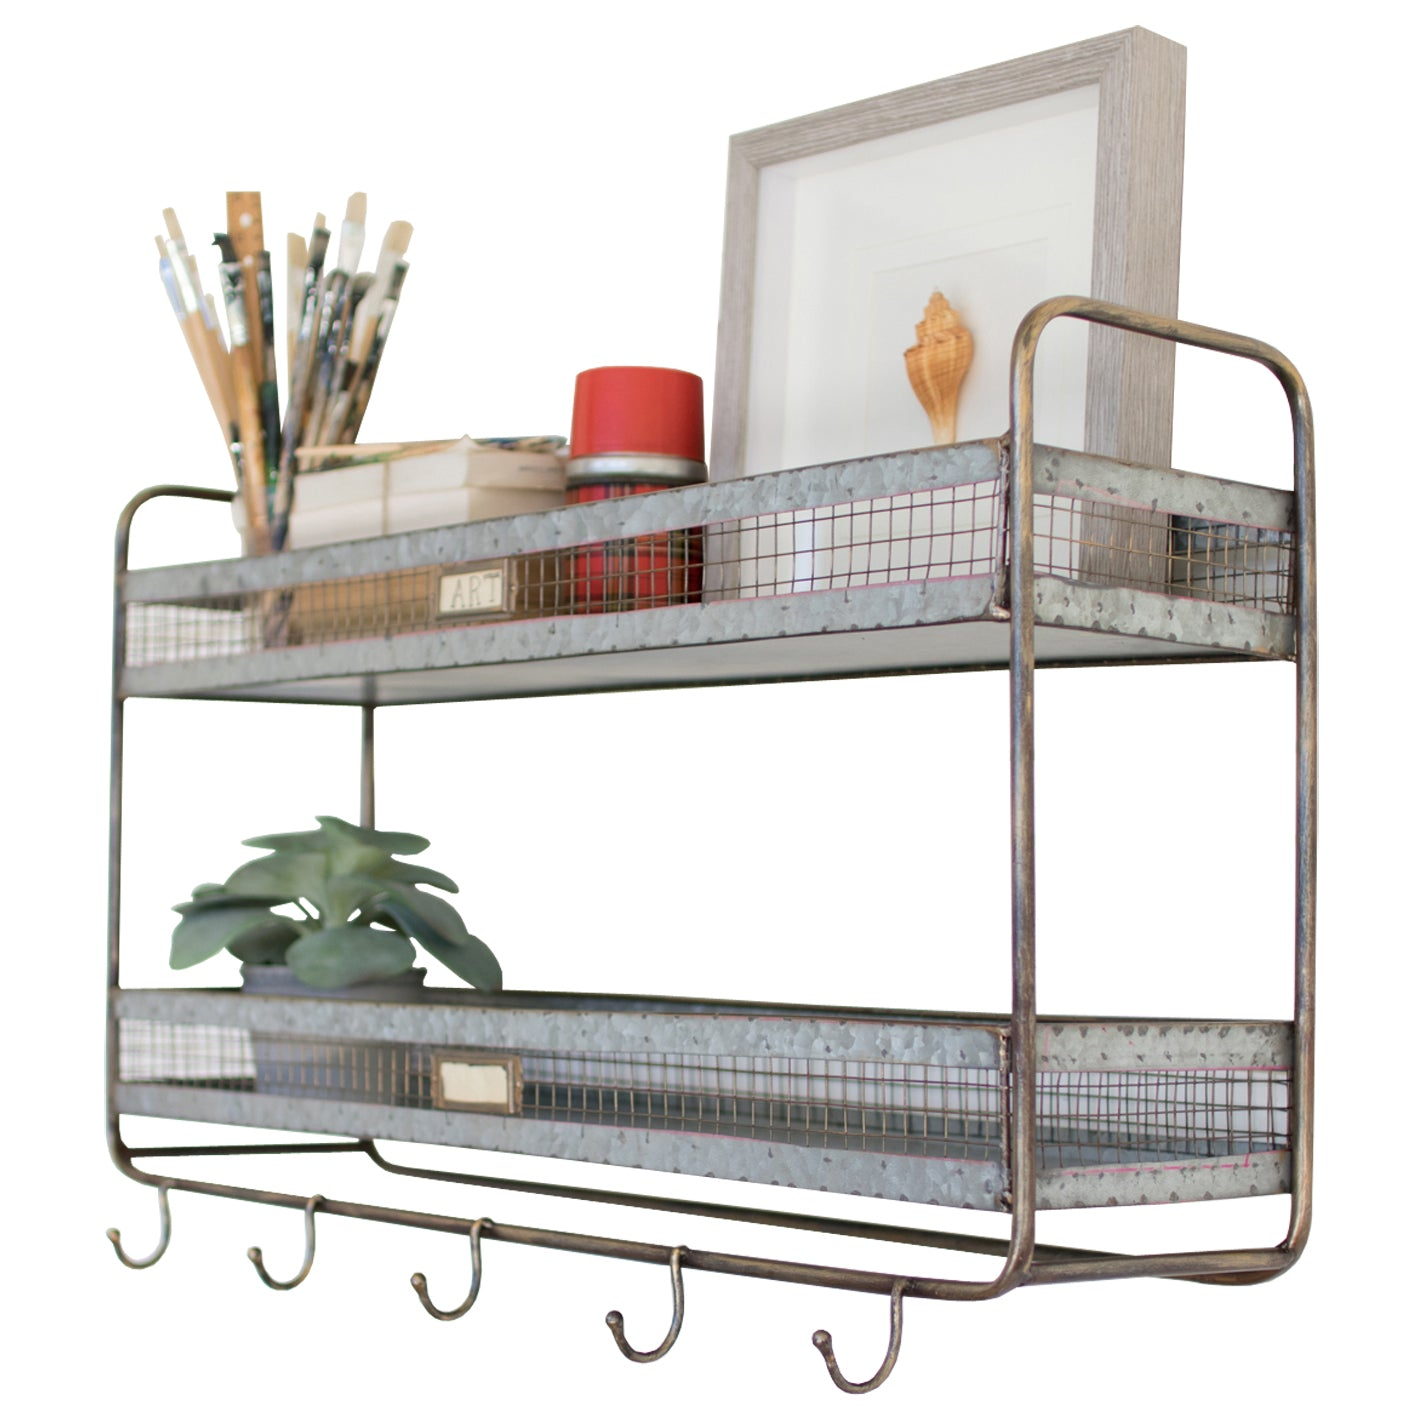 Industrial Modern Floating Wall Mount Shelf With Coat Hooks